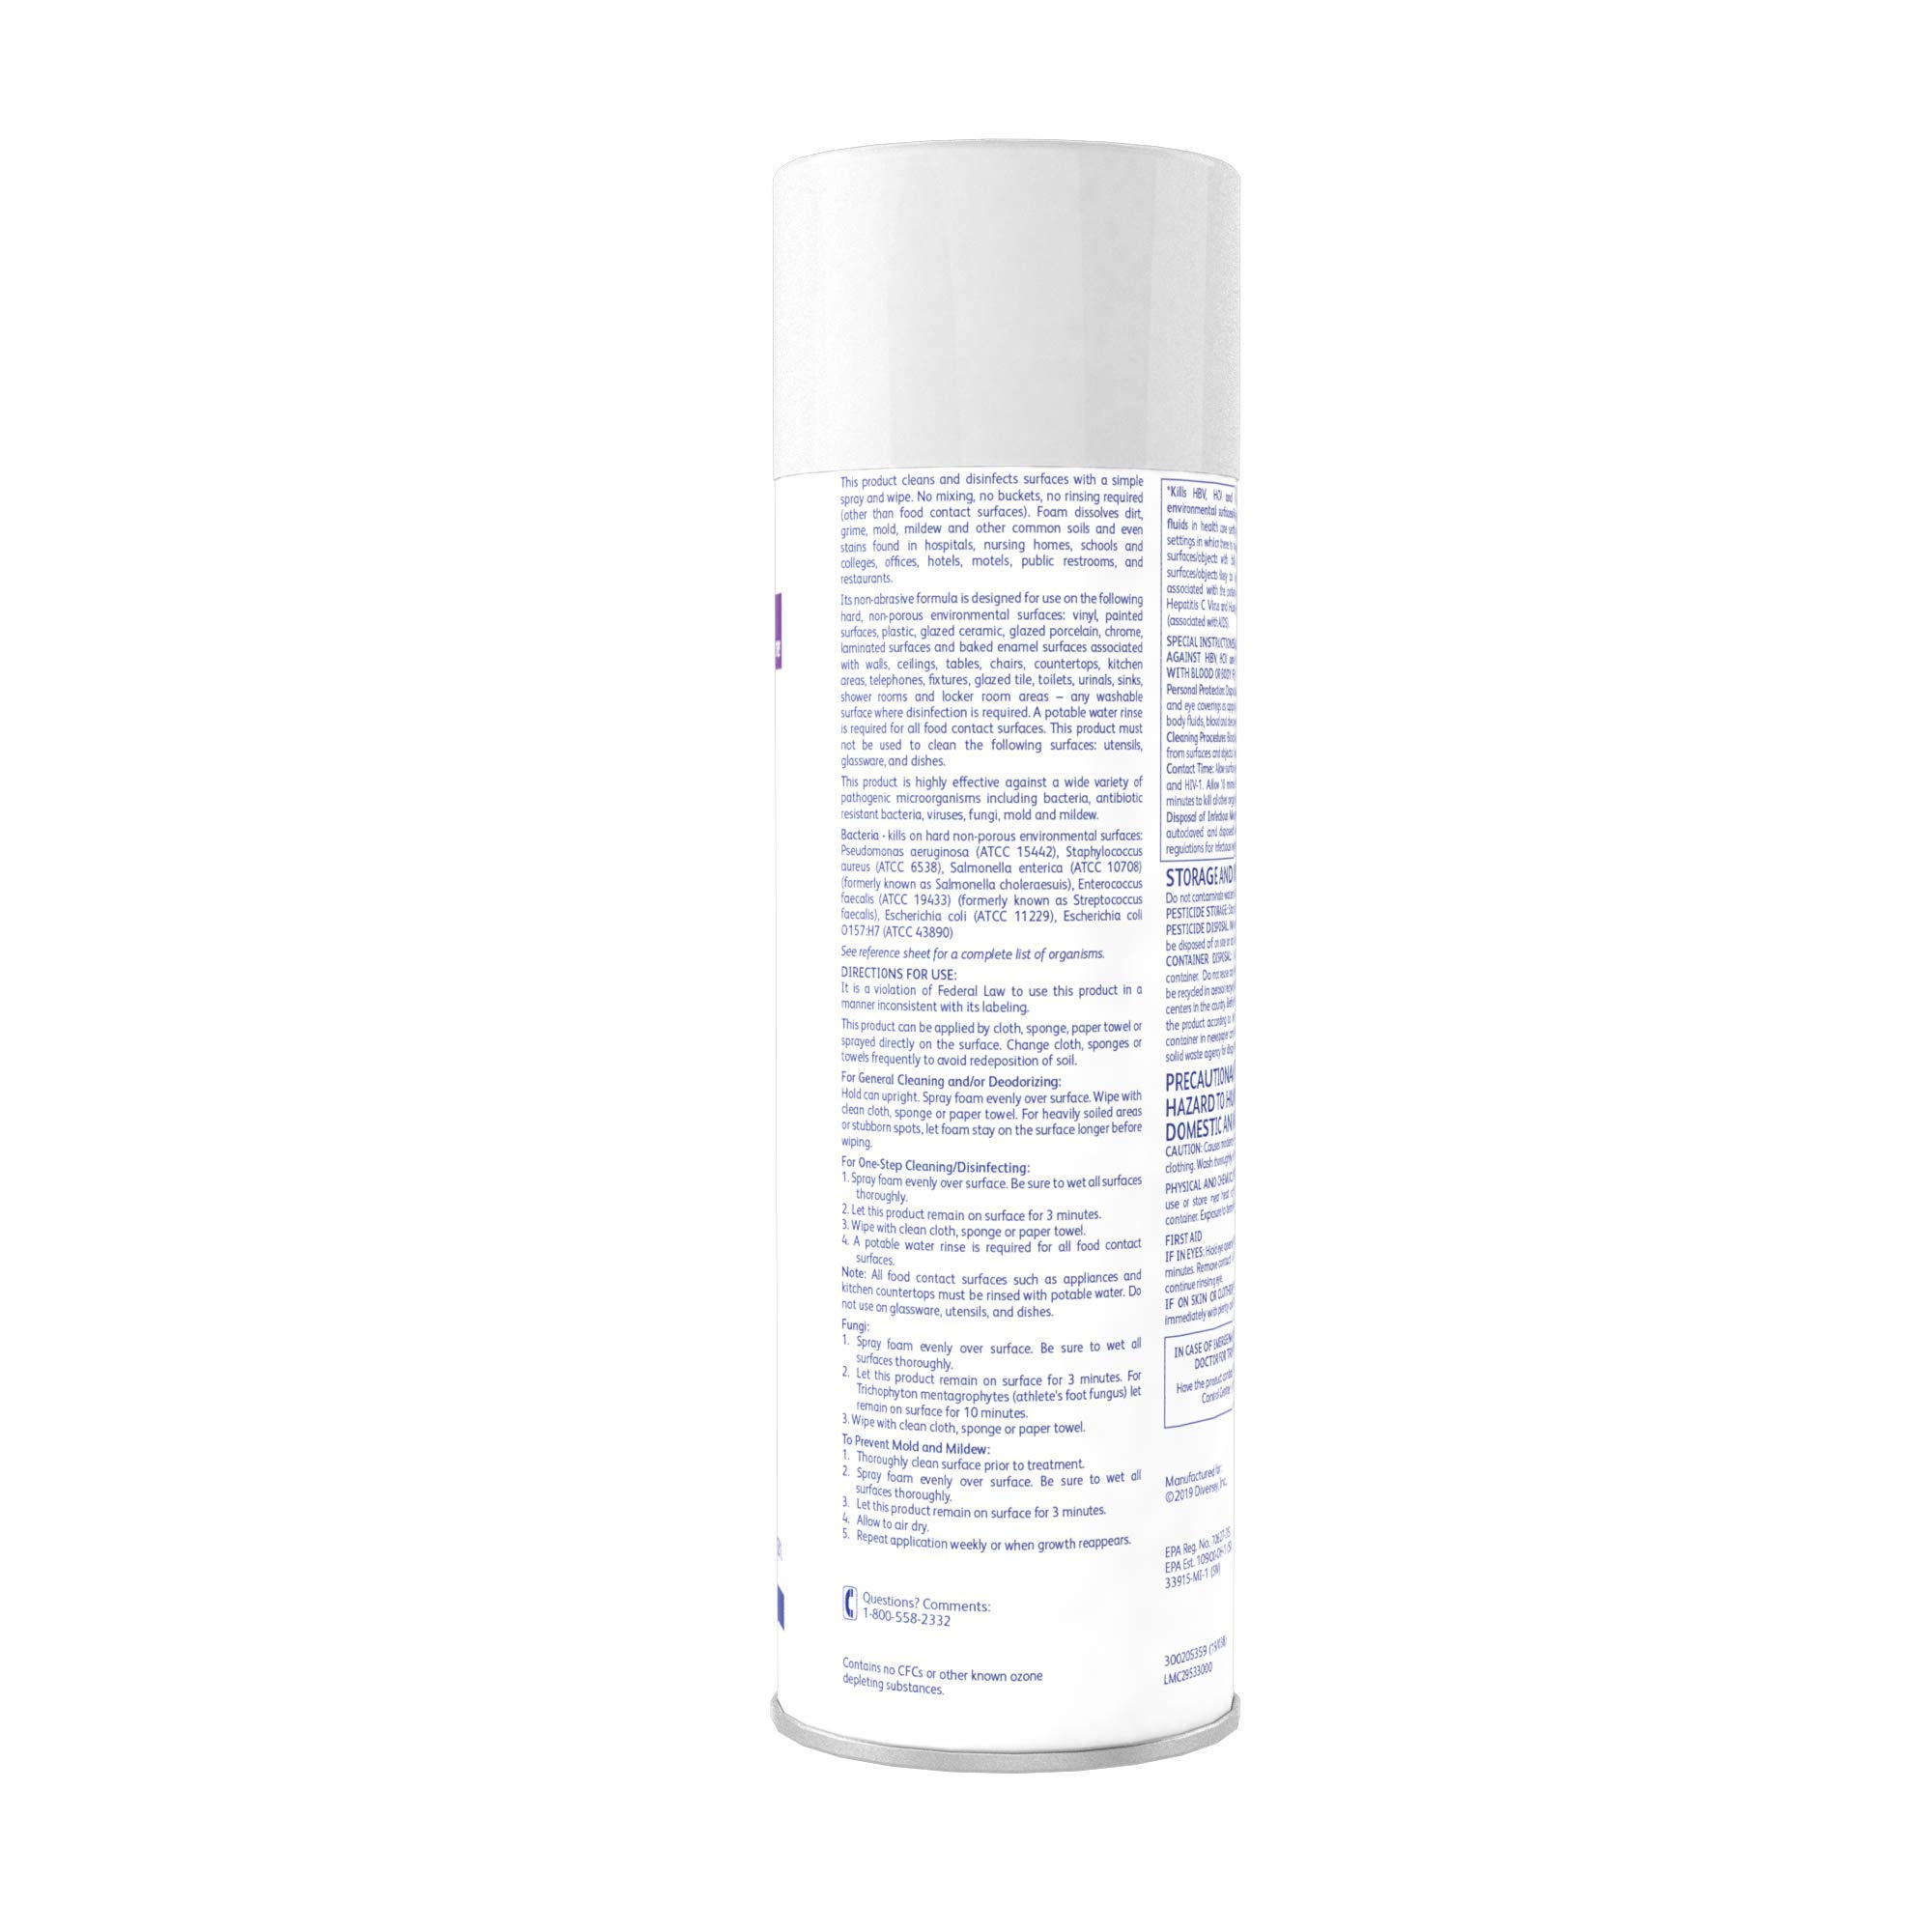 Diversey Envy 04531 Foaming Disinfectant Cleaner, 12 x 19 oz./539 g Aerosol by Diversey (Image #3)